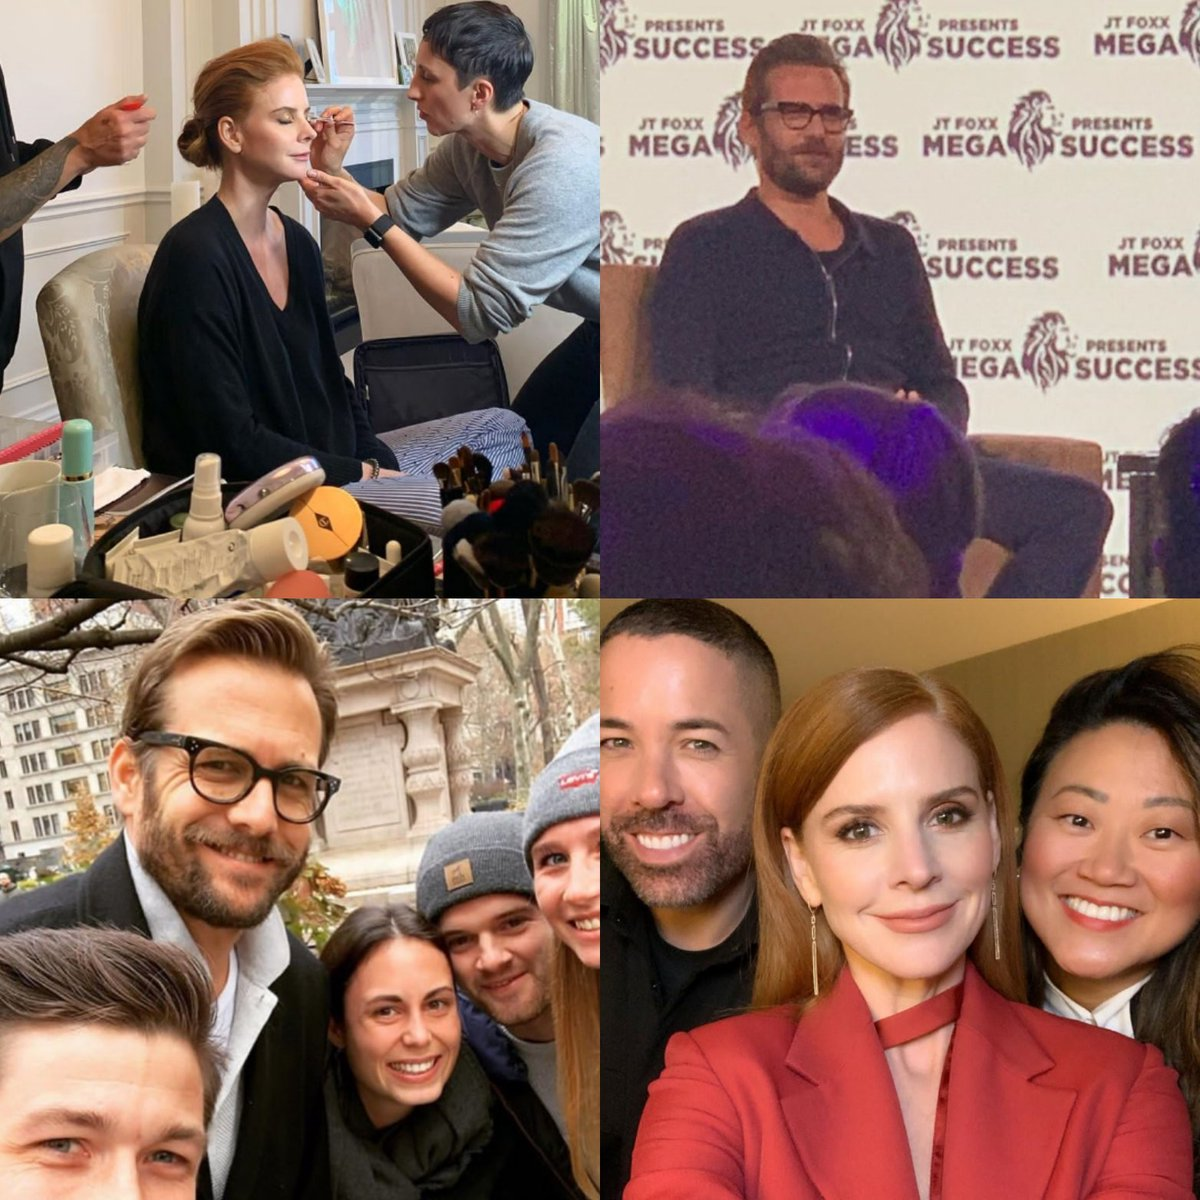 I never thought I'd miss this talented people this much but here I am and there they are. Living the life post #Suits, Gabriel is slaying [with his beard] and Sarah said she crushed reunion. <br>http://pic.twitter.com/UJPYwNfA61